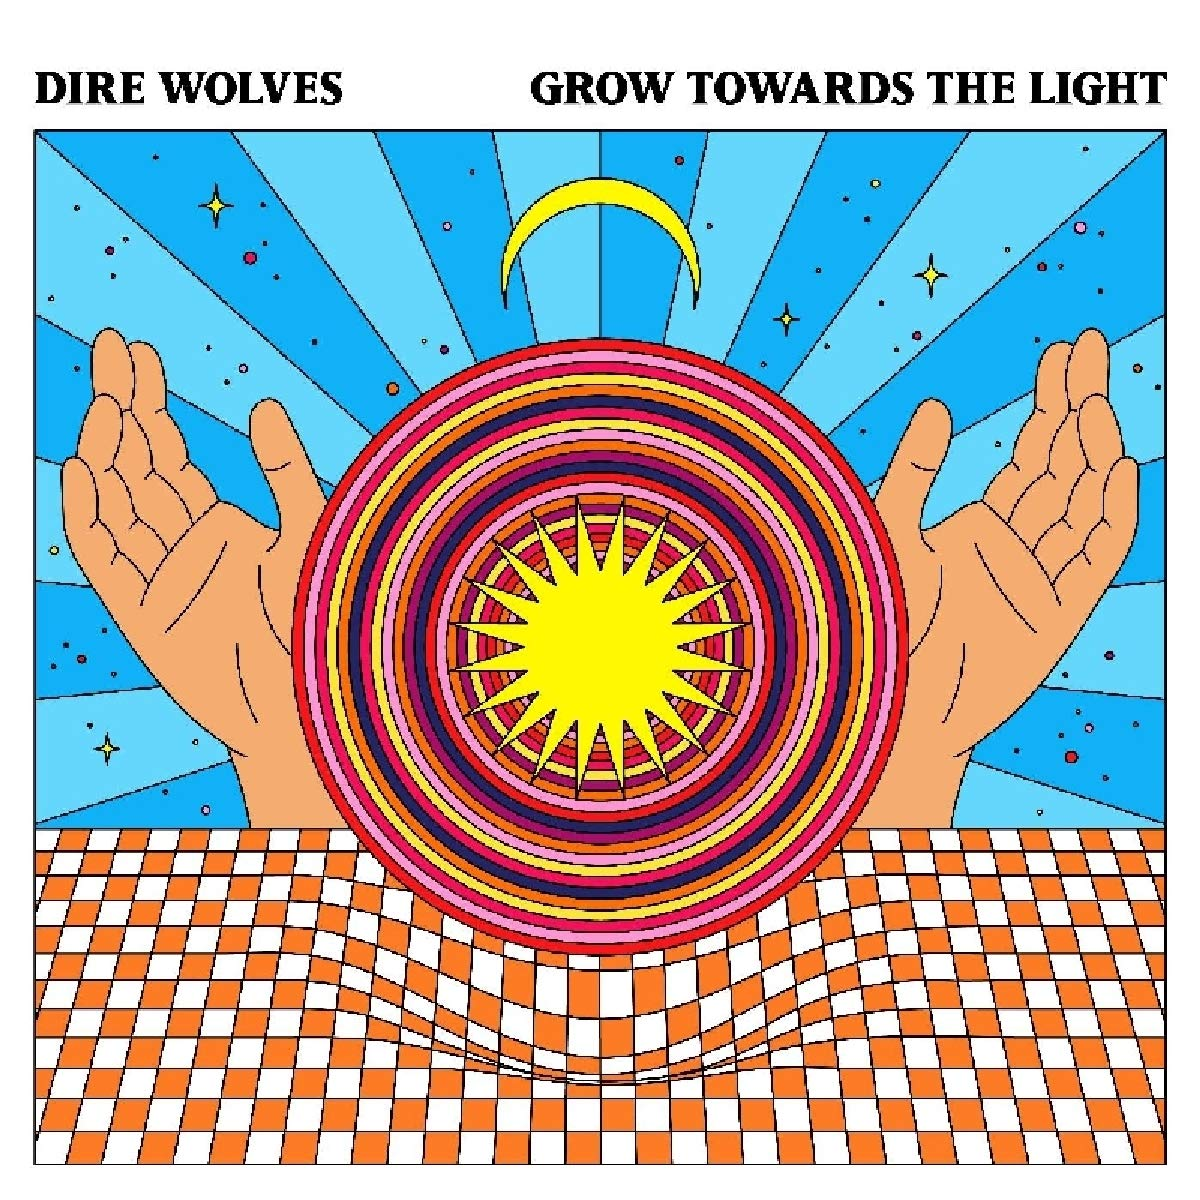 Grow Towards The Light by Dire Wolves